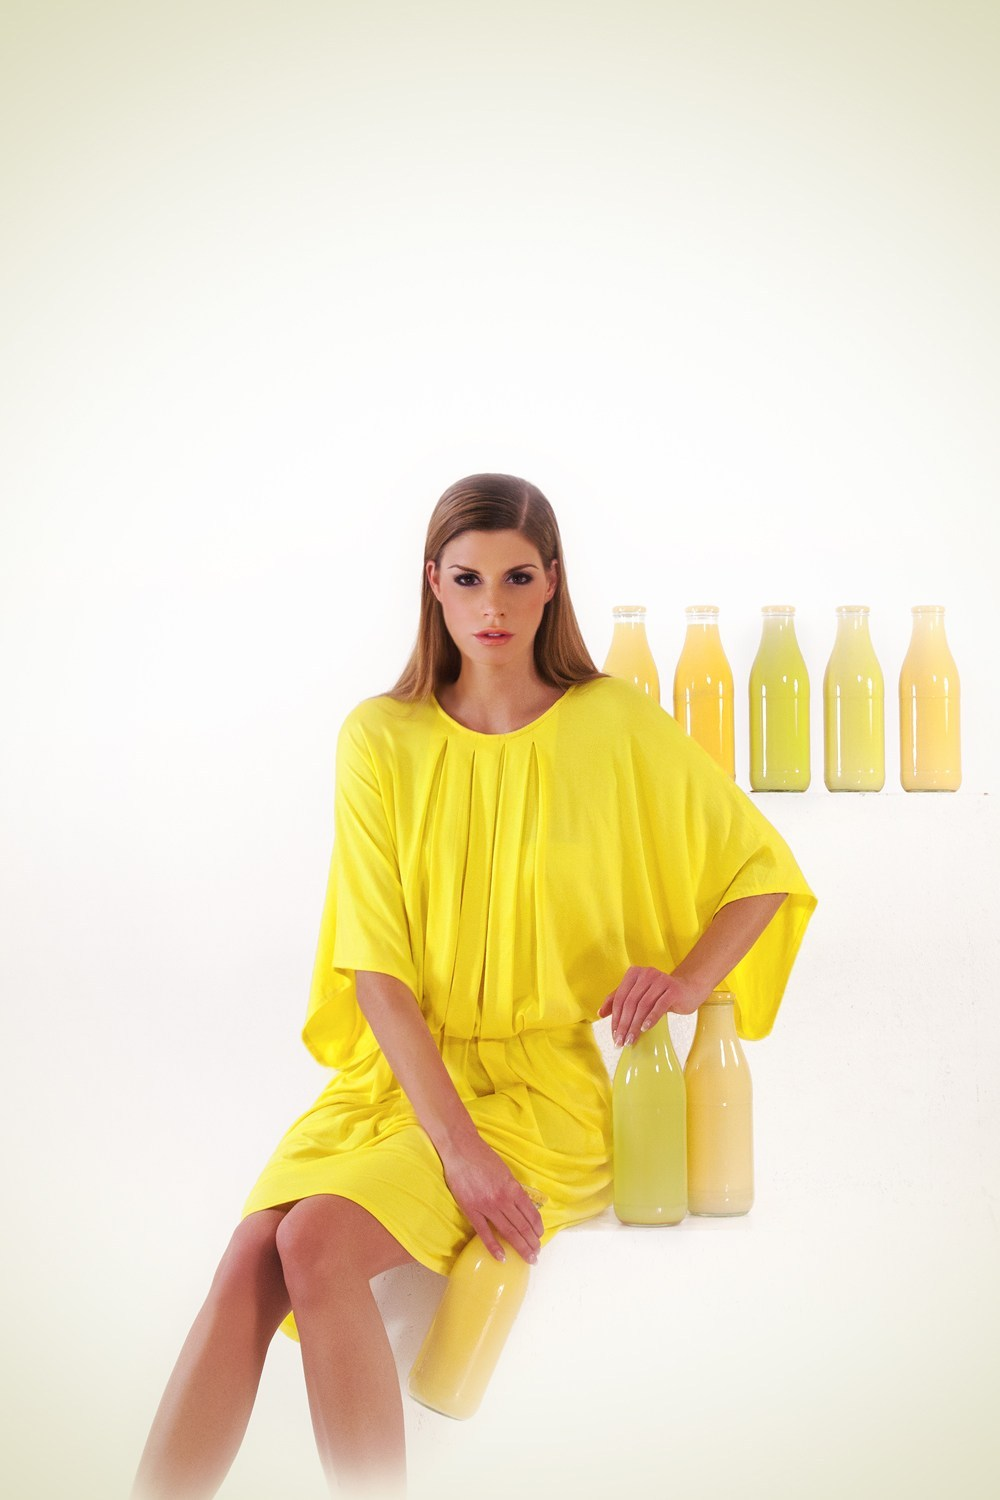 Clothes made with QMILK fibres are biodegradable, natural and have a silky touch. Photo Courtesy of QMILK